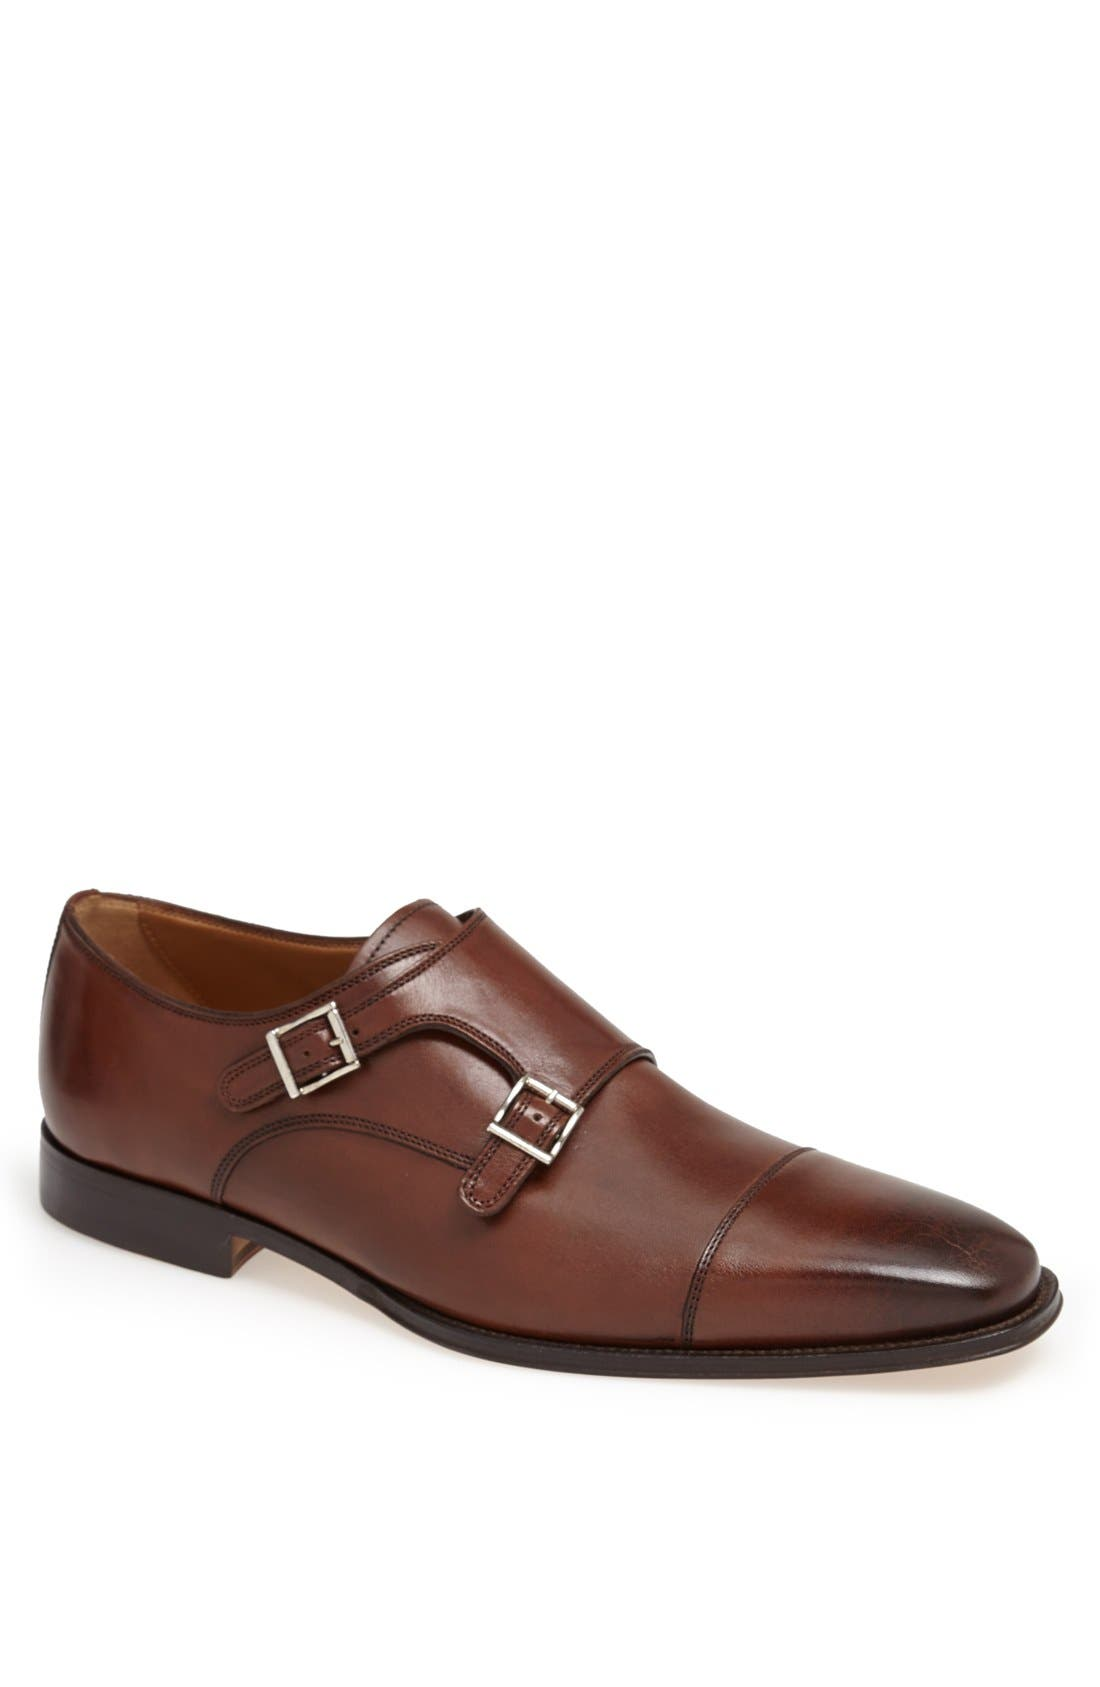 Alternate Image 1 Selected - Florsheim 'Classico' Double Monk Strap Slip-On